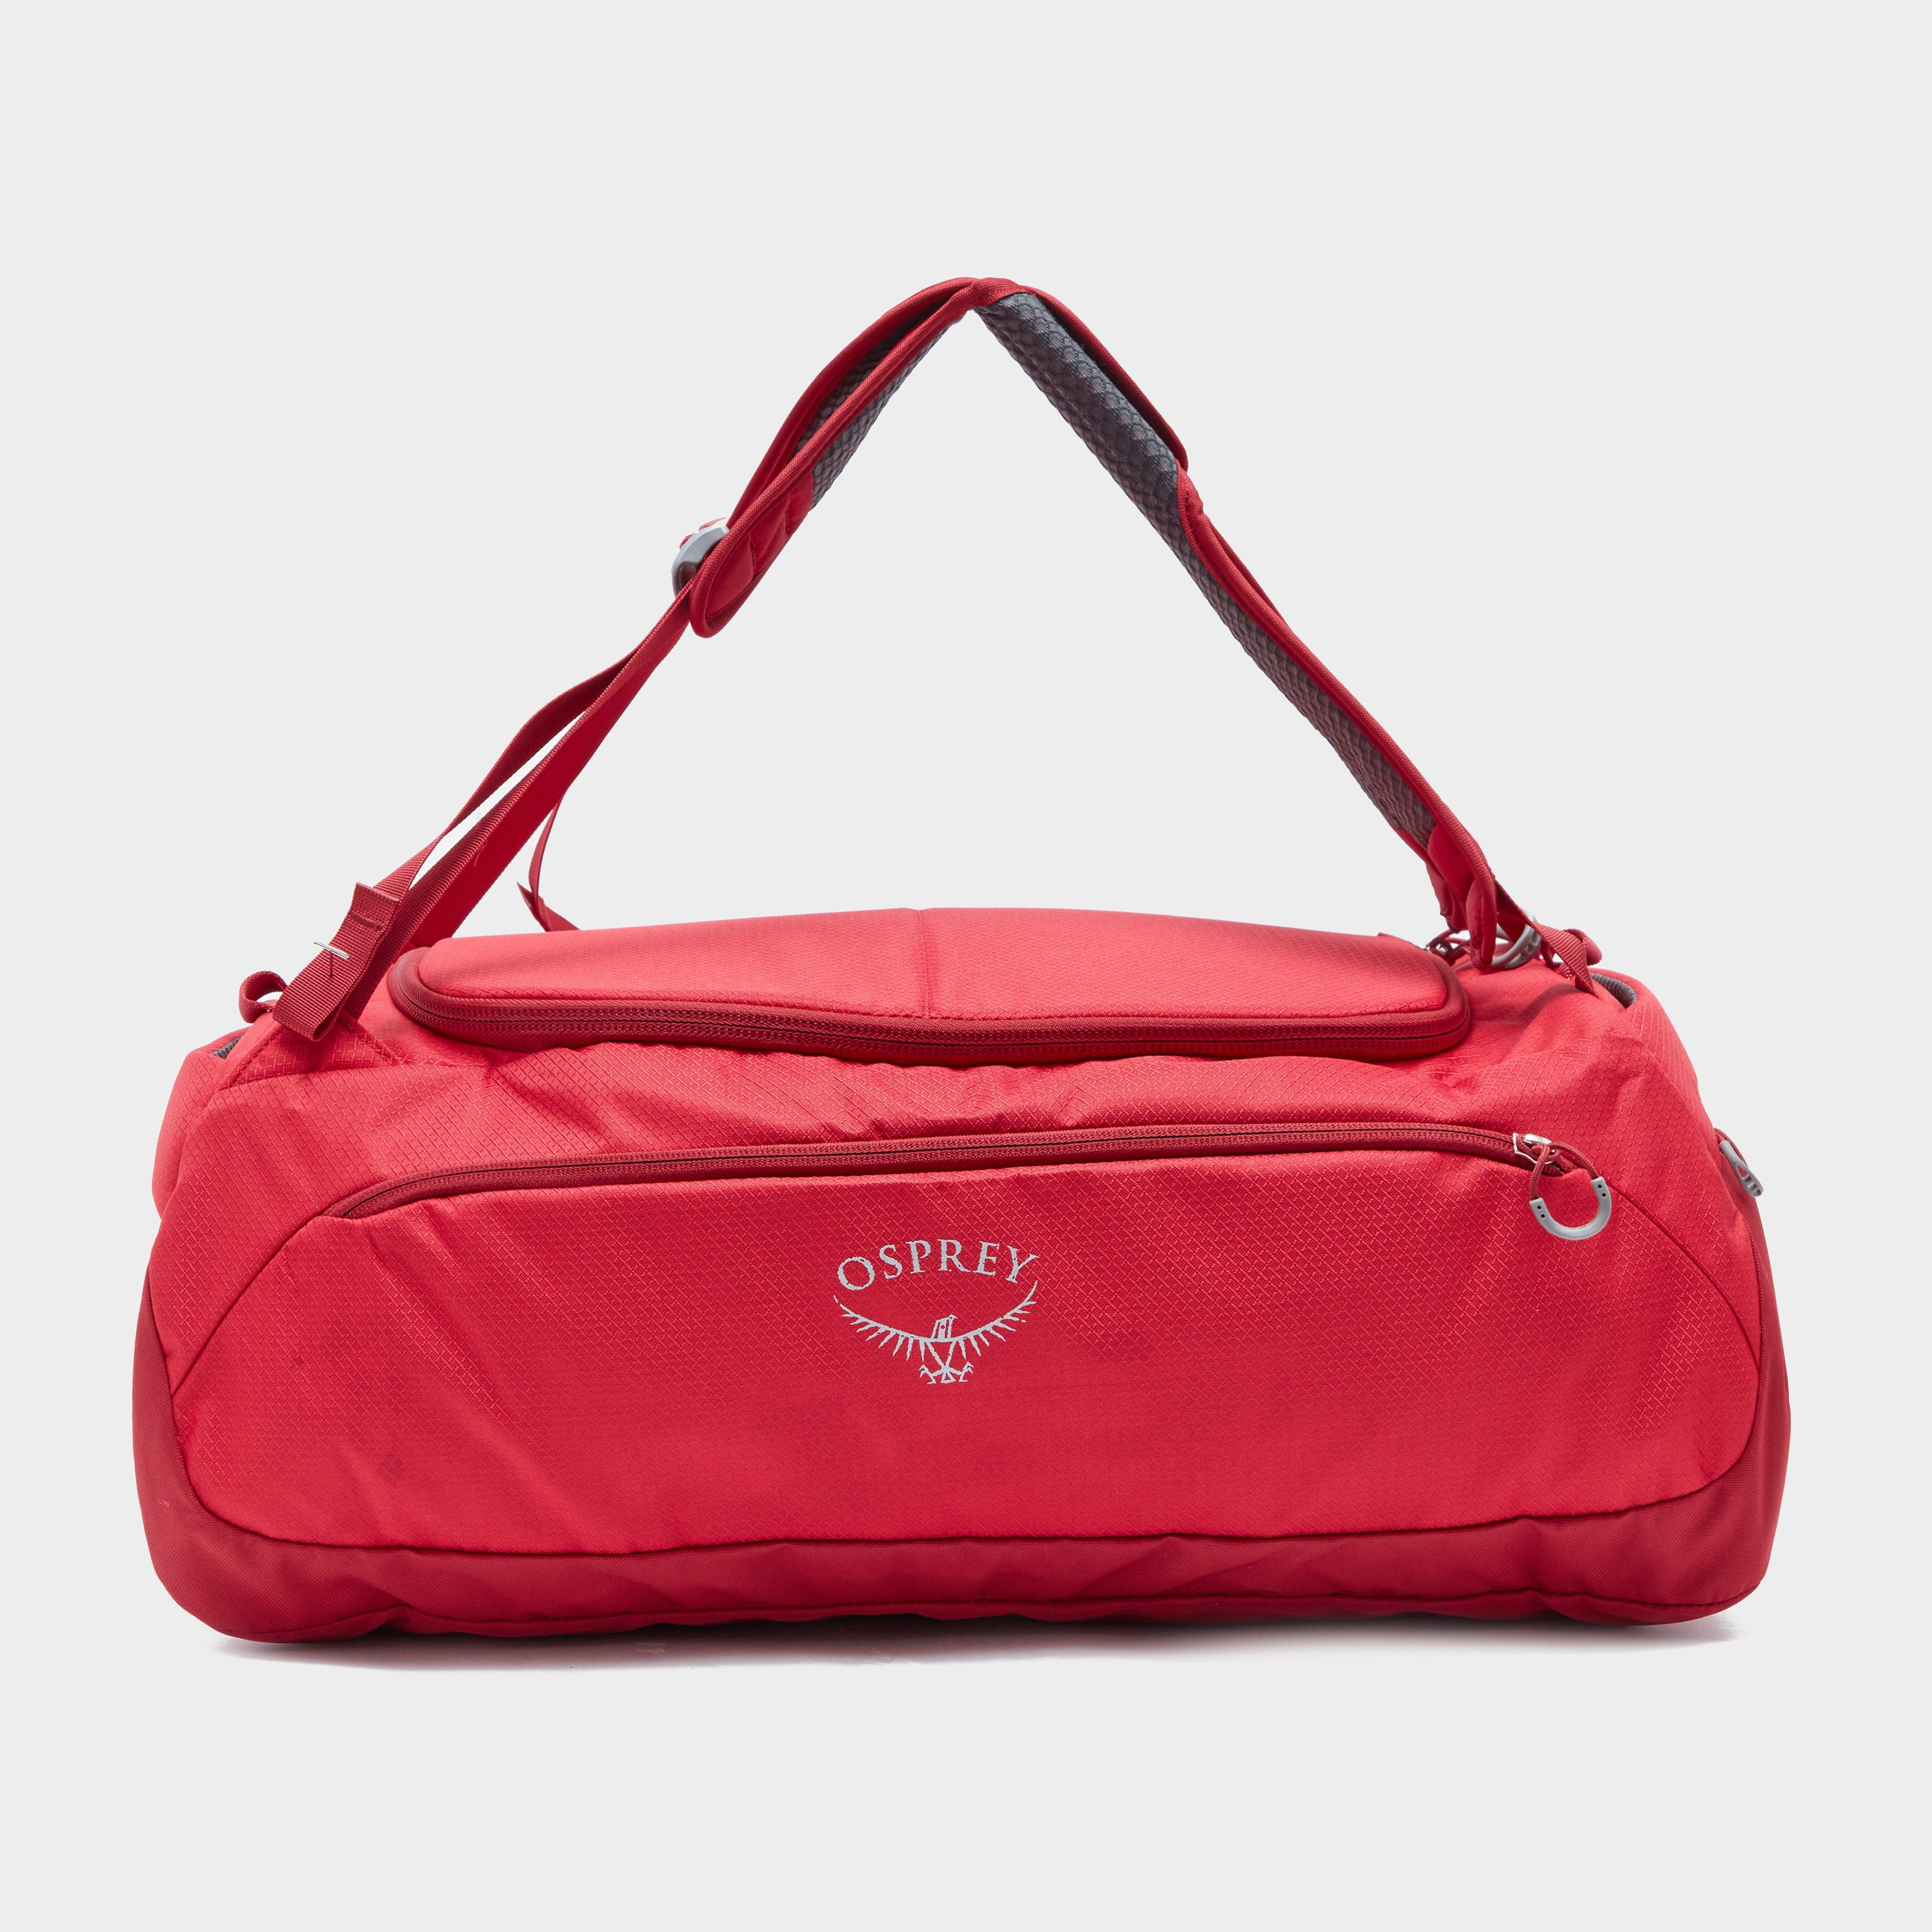 Osprey Daylite Duffel 45L Holdall - Red/Red, Red